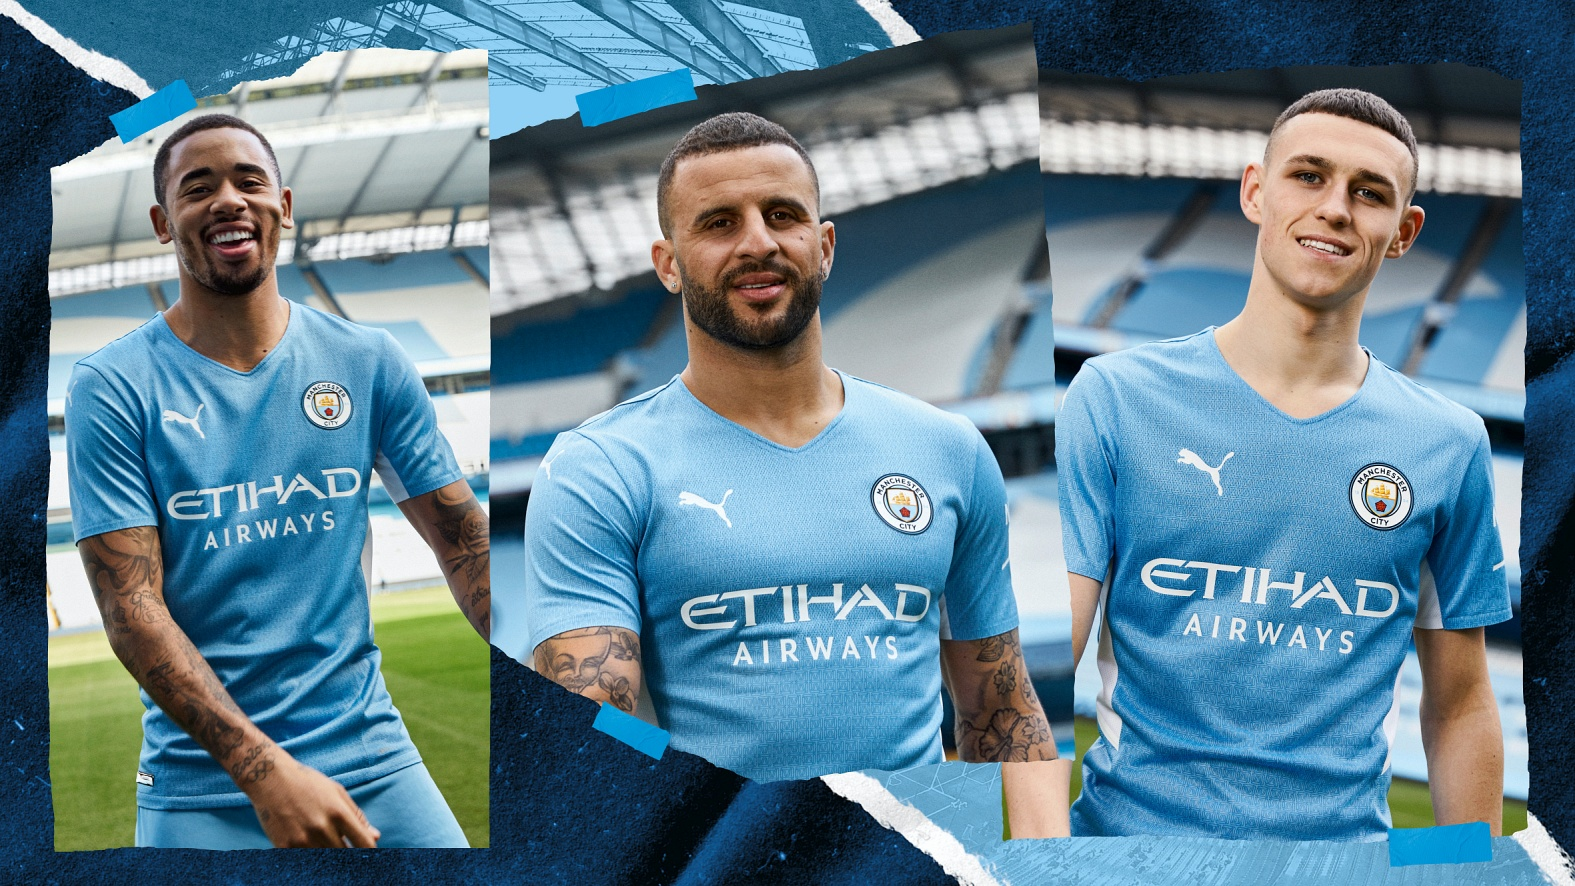 PUMA & MANCHESTER CITY UNVEIL NEW HOME KIT IN TRIBUTE TO THE GOAL THAT MARKED A NEW ERA FOR CITY